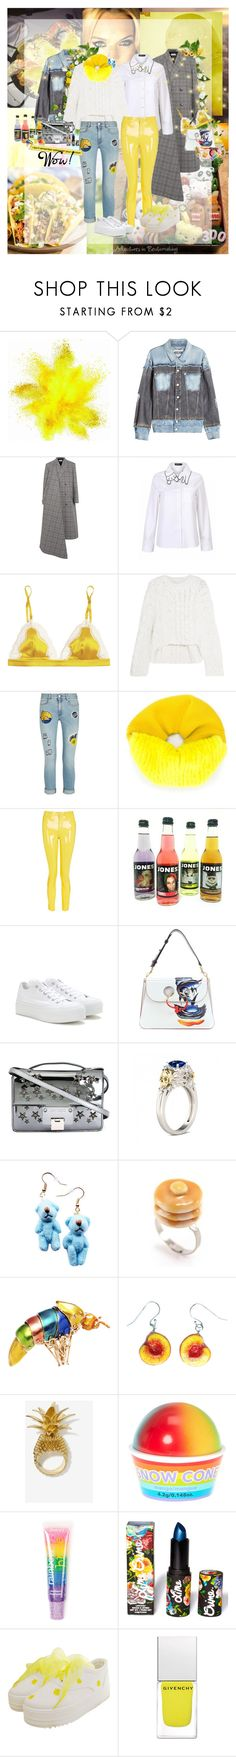 """Yellow Accent"" by lady-redrise ❤ liked on Polyvore featuring ANNIE, Moschino, Balenciaga, STELLA McCARTNEY, Maison Margiela, Yves Salomon, Topshop, Converse, J.W. Anderson and Jimmy Choo"